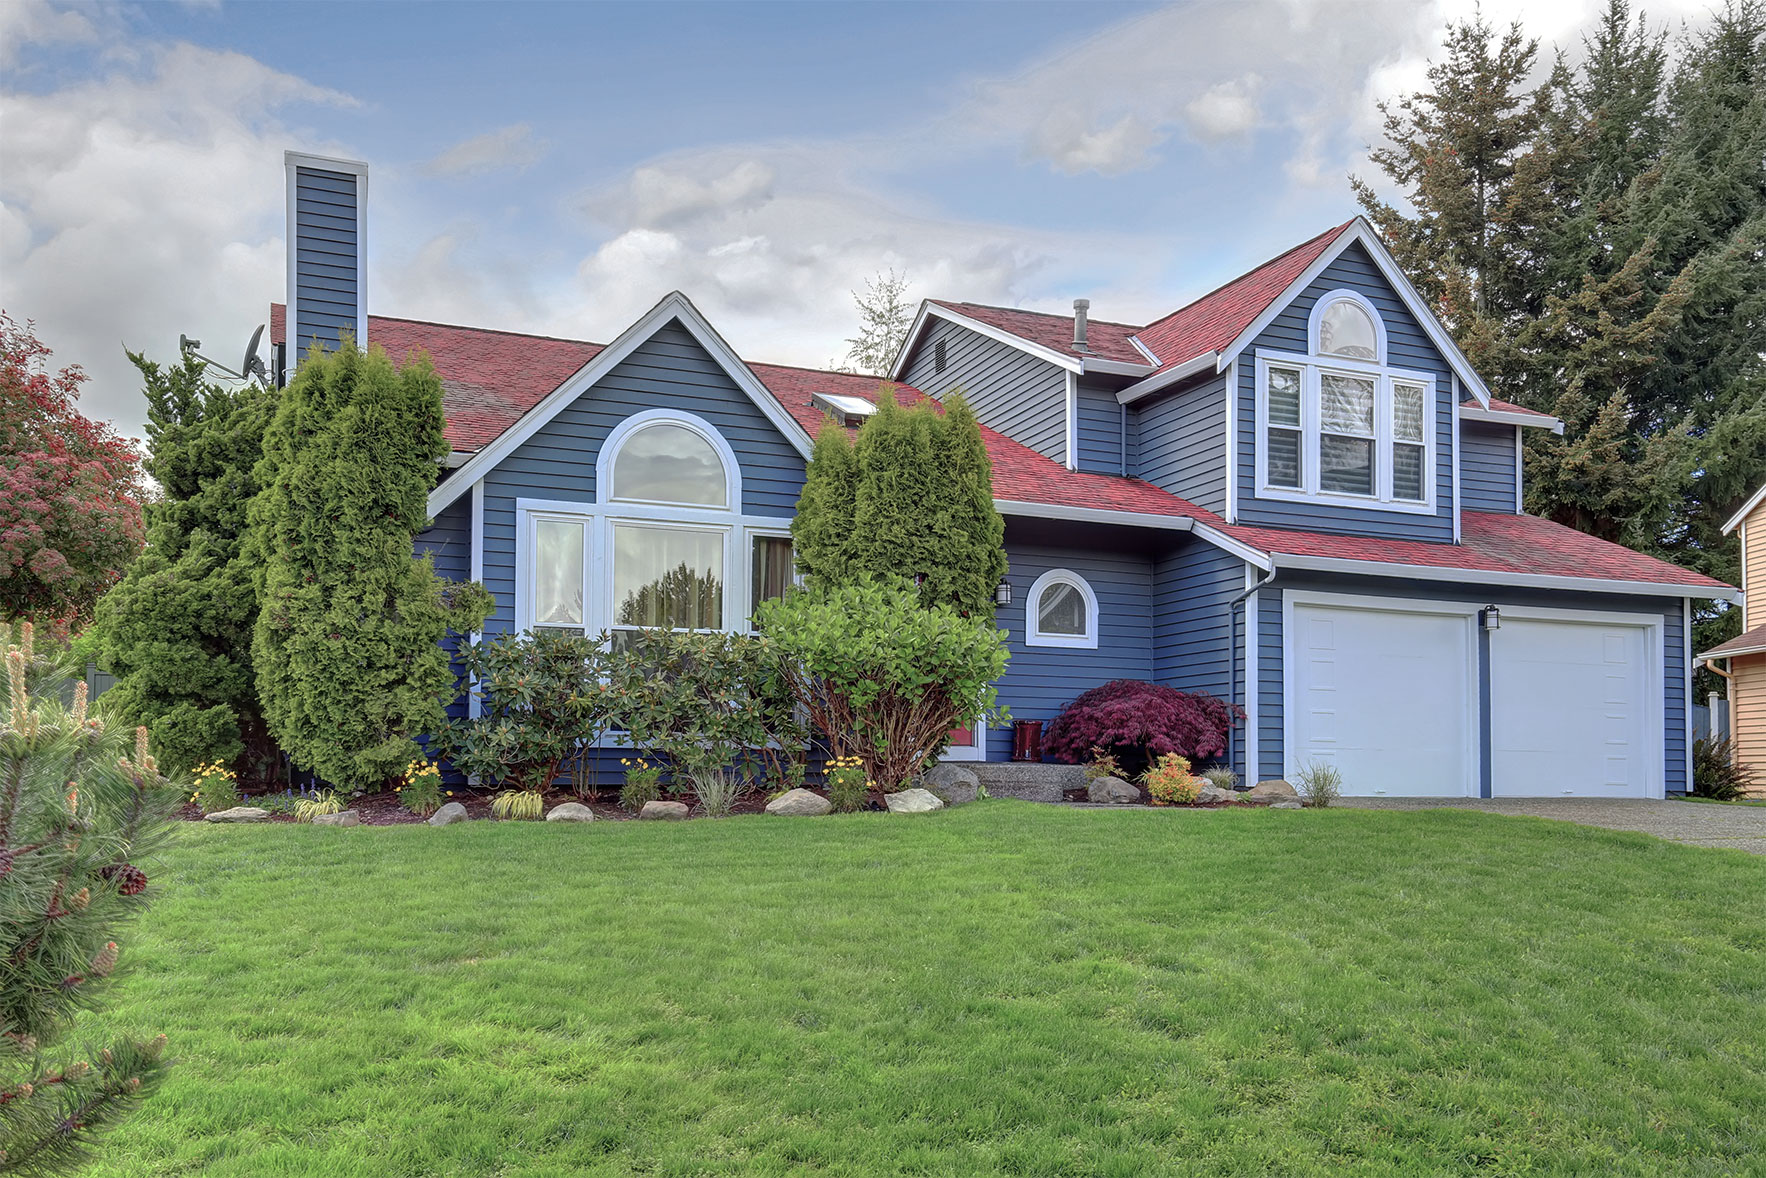 A house with blue exterior paint, bright red roof, large white windows and tidy landscaping.